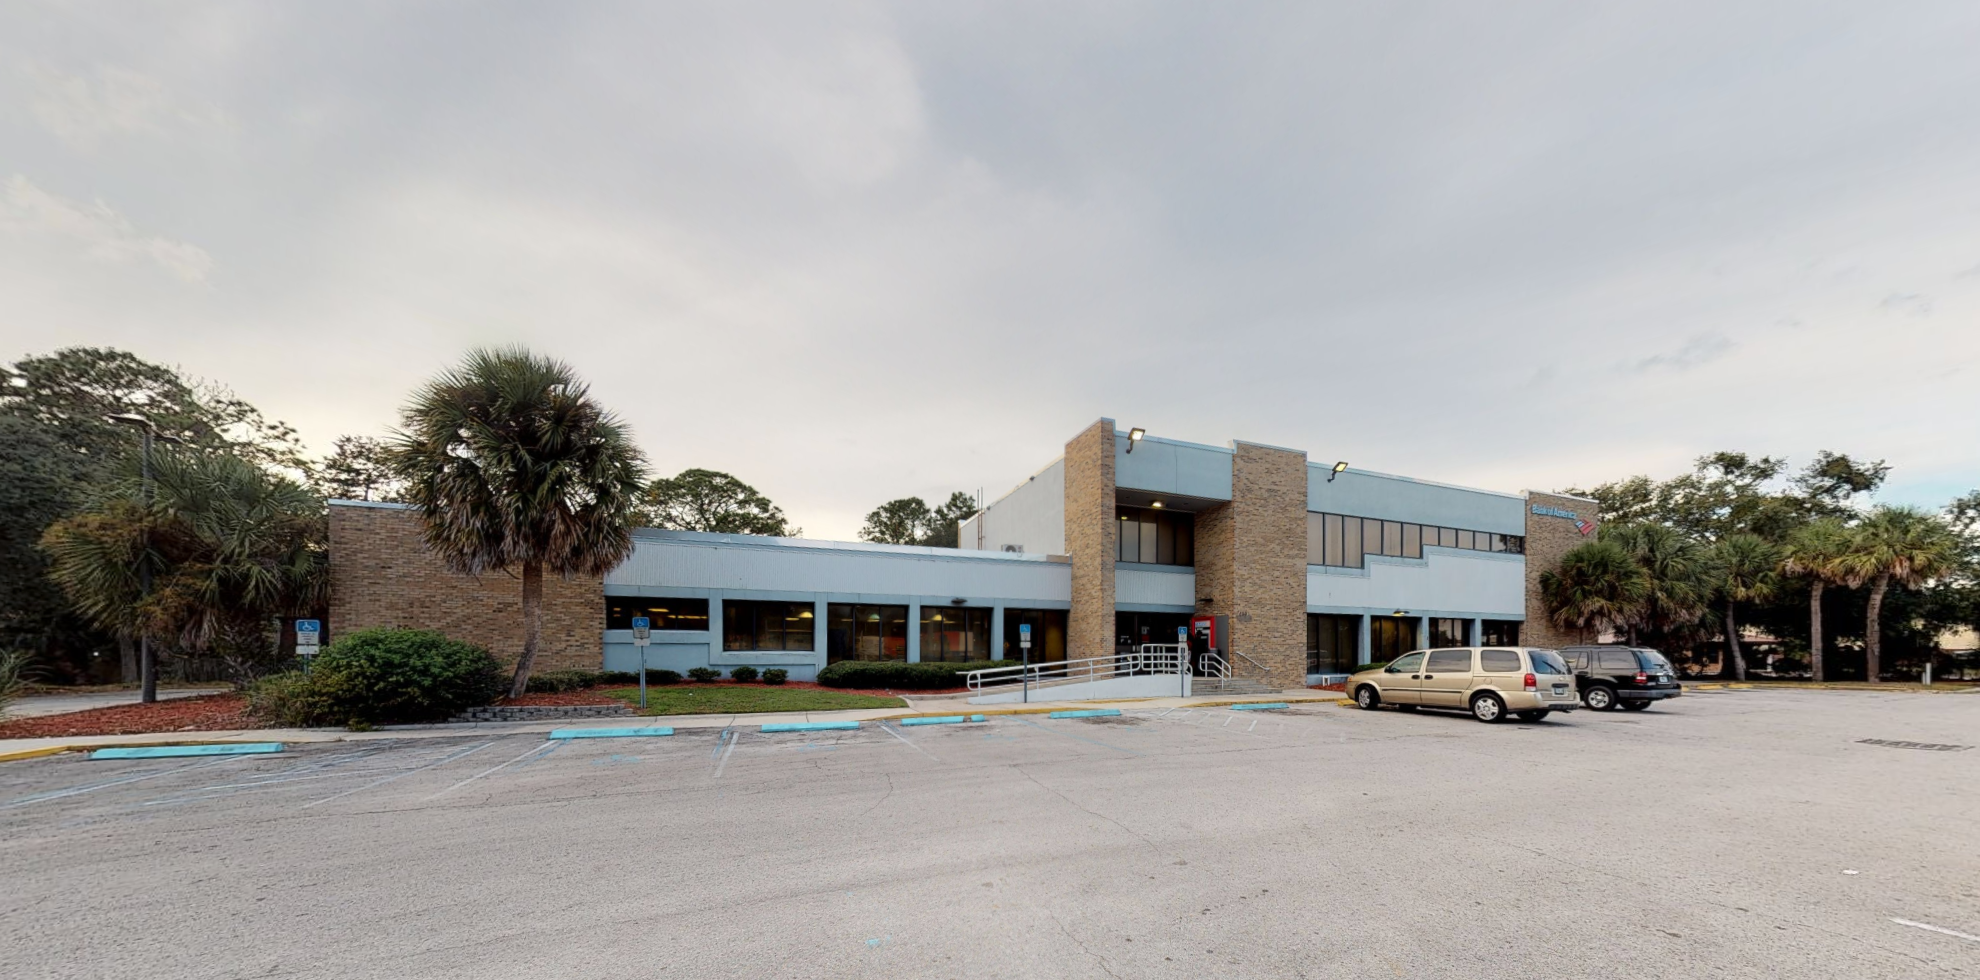 Bank of America financial center with drive-thru ATM   620 S Highway 19, Palatka, FL 32177